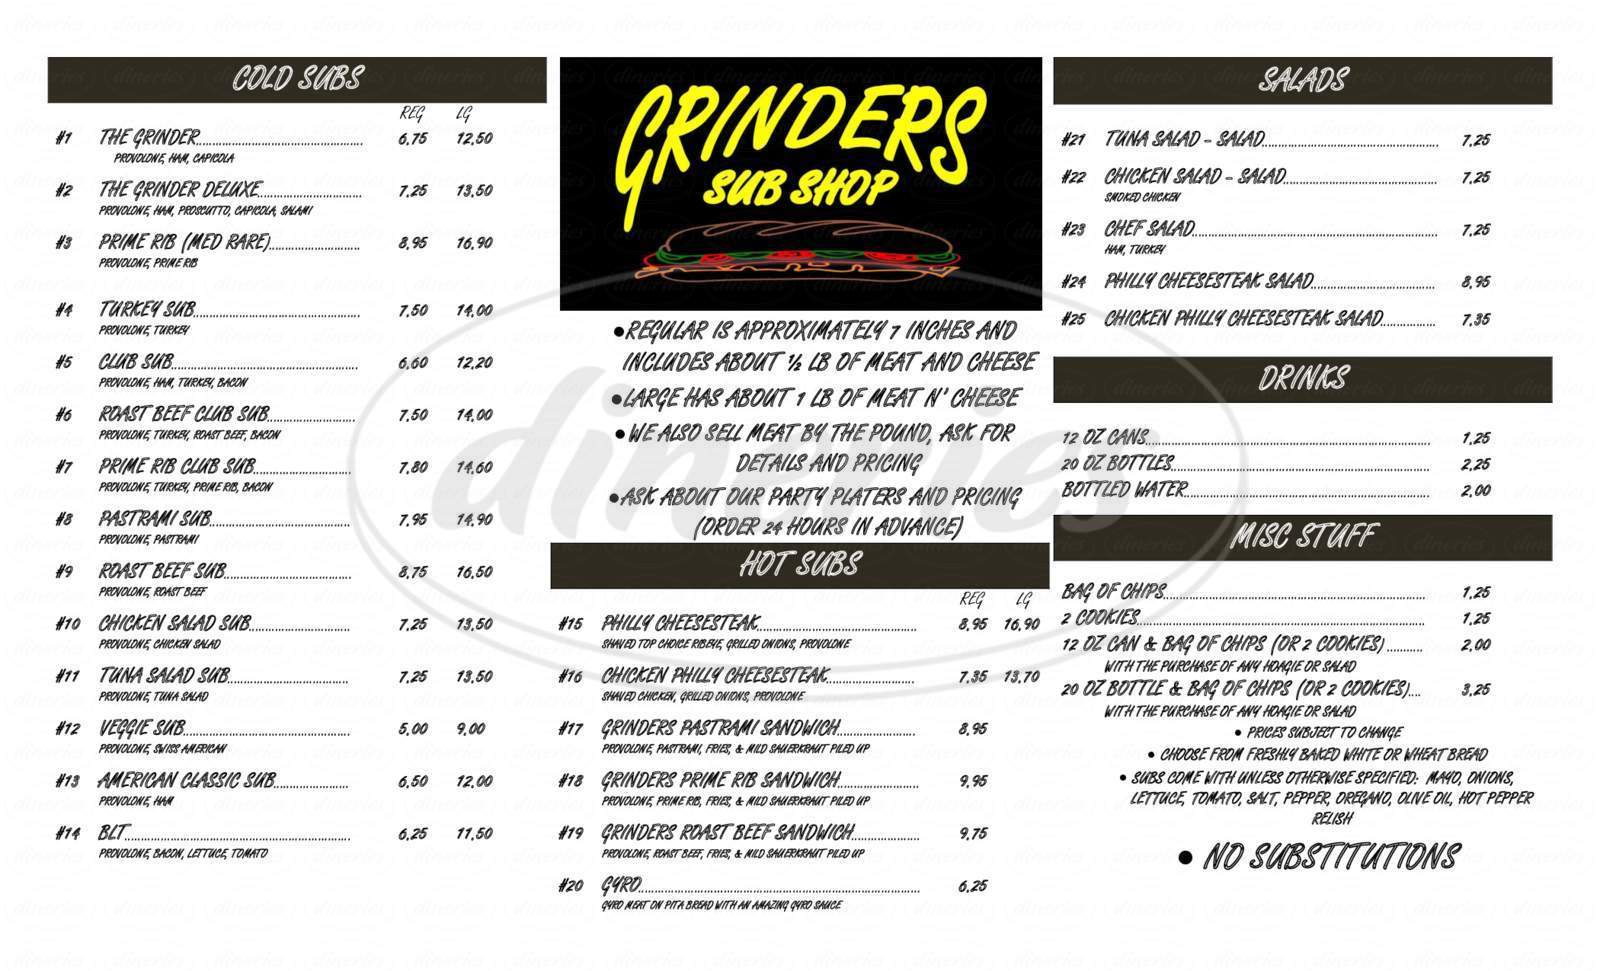 menu for Grinders Sub Shop